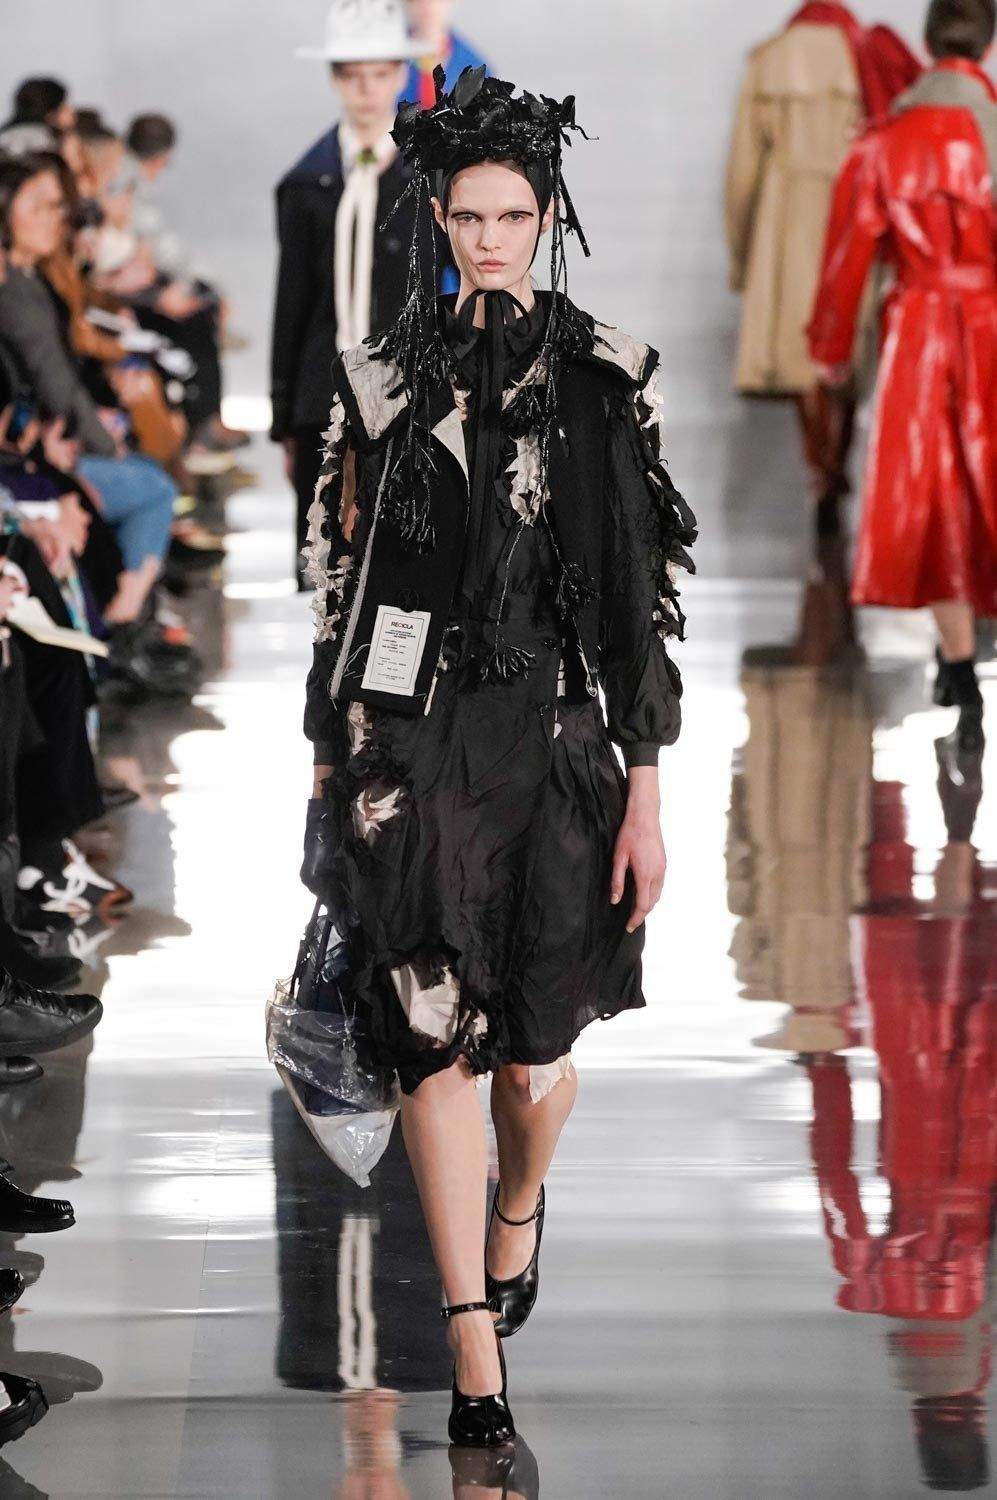 Paris Fashion Week Fw 2020 Maison Margiela Black Embellished Dress Clothia In 2020 Fashion Emerging Designers Fashion Paris Fashion Week